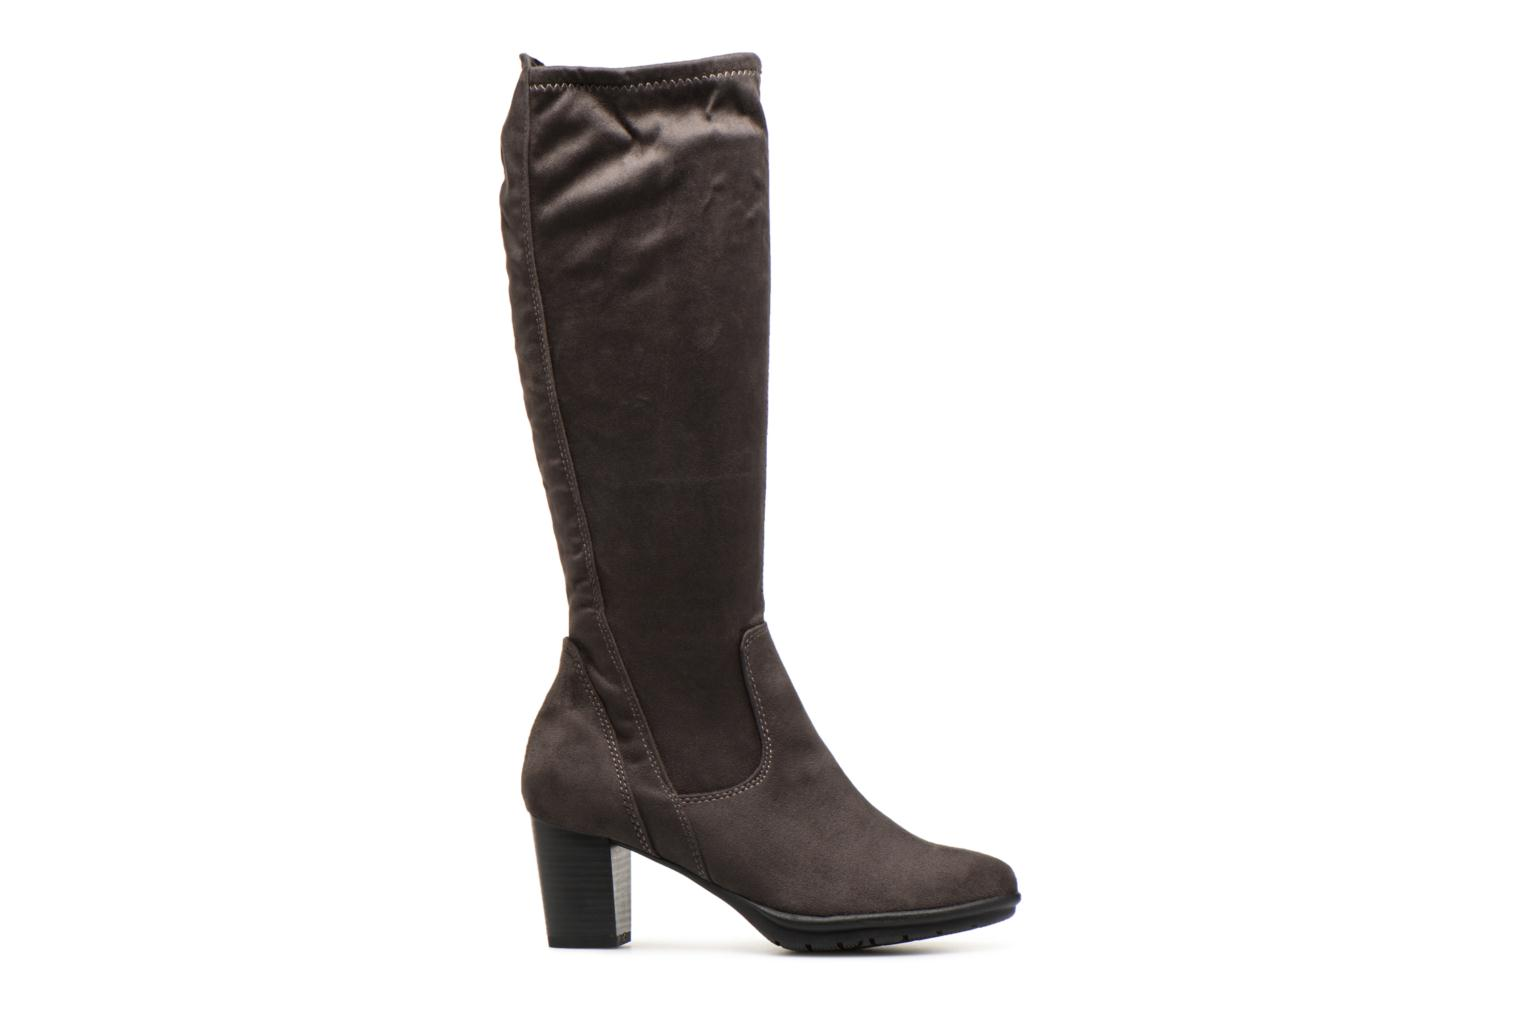 Mujer Tozzi Botas Marco Tozzi Mujer Isee Botas Mujer Gris 20decb c1ad02